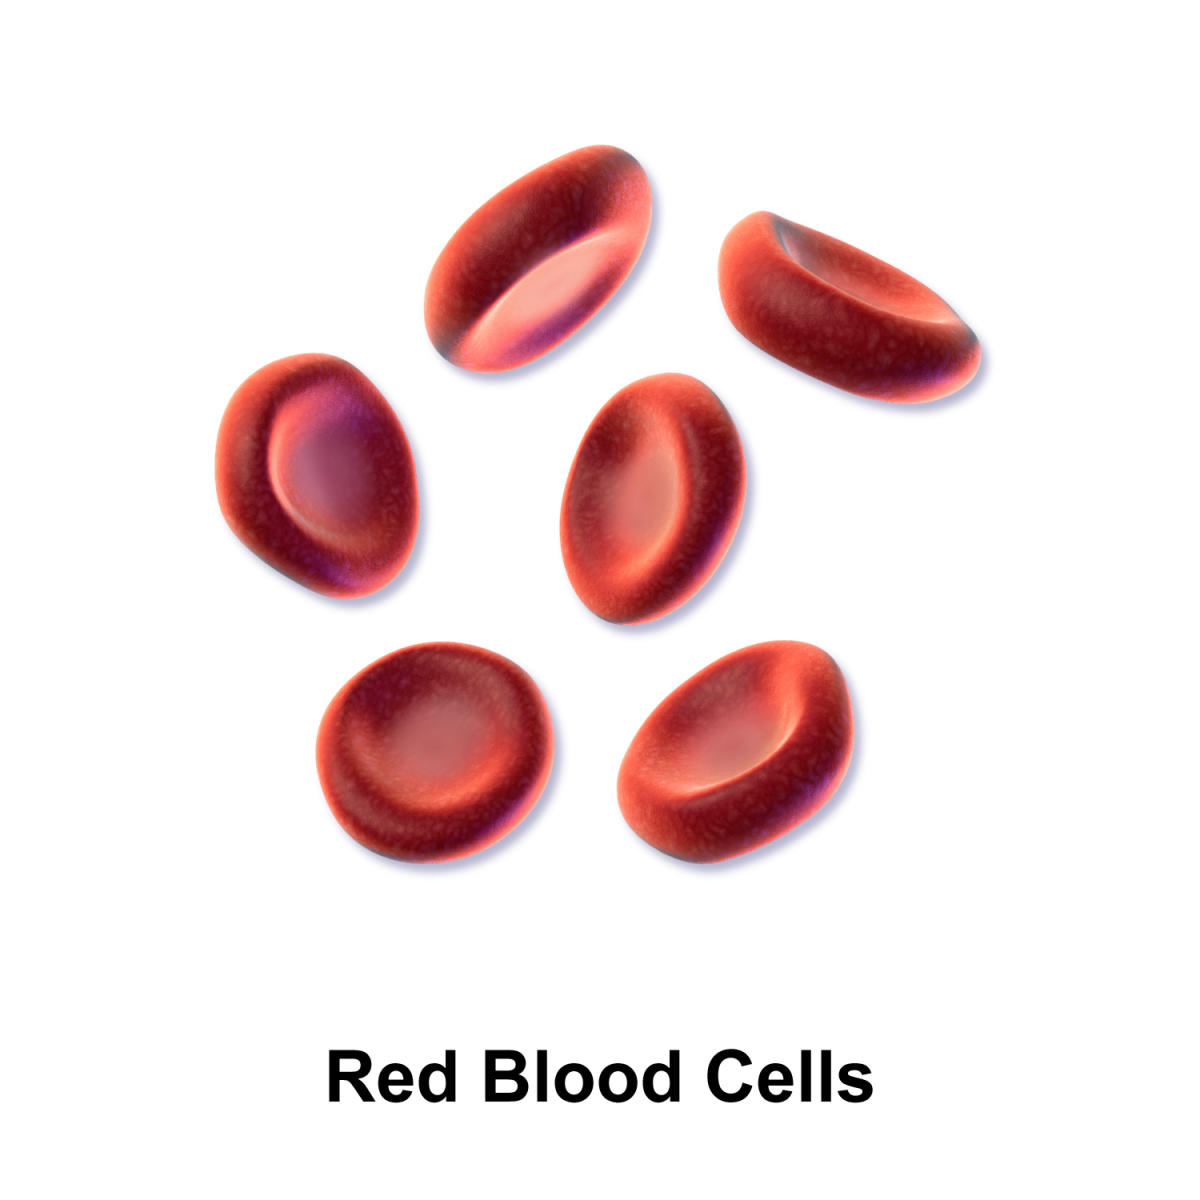 Red Blood Cells and Hemoglobin in Health and in Anemia Disorders